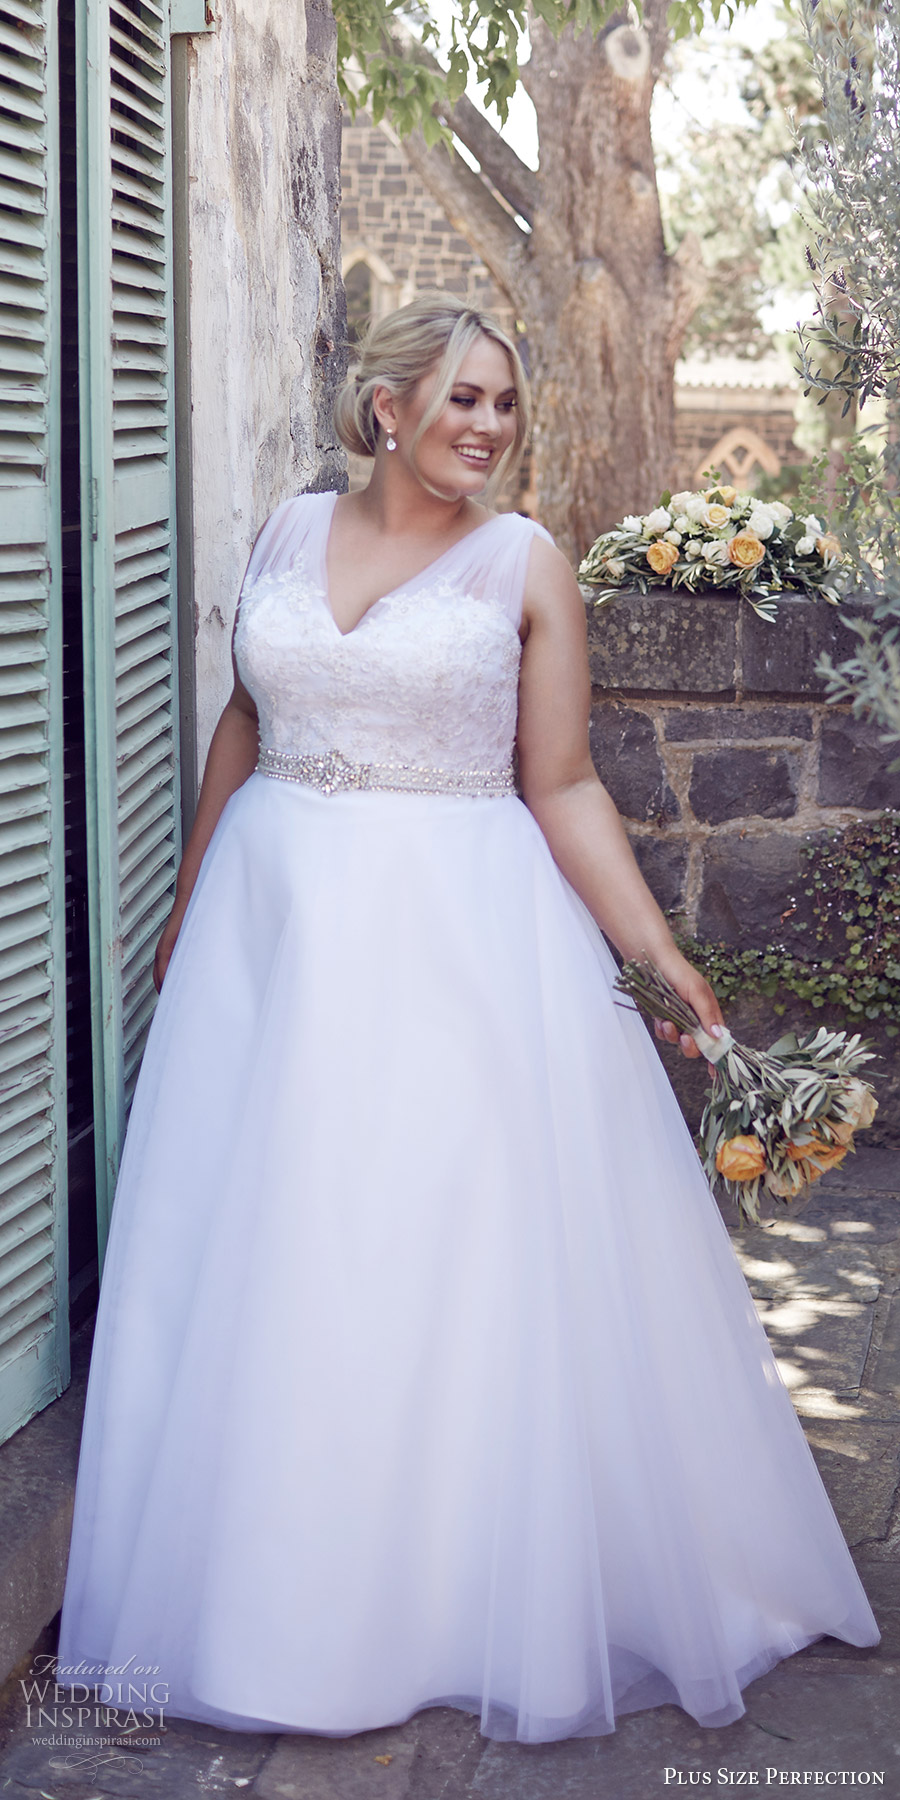 Plus size perfection wedding dresses it s a love story for Lace wedding dresses plus size